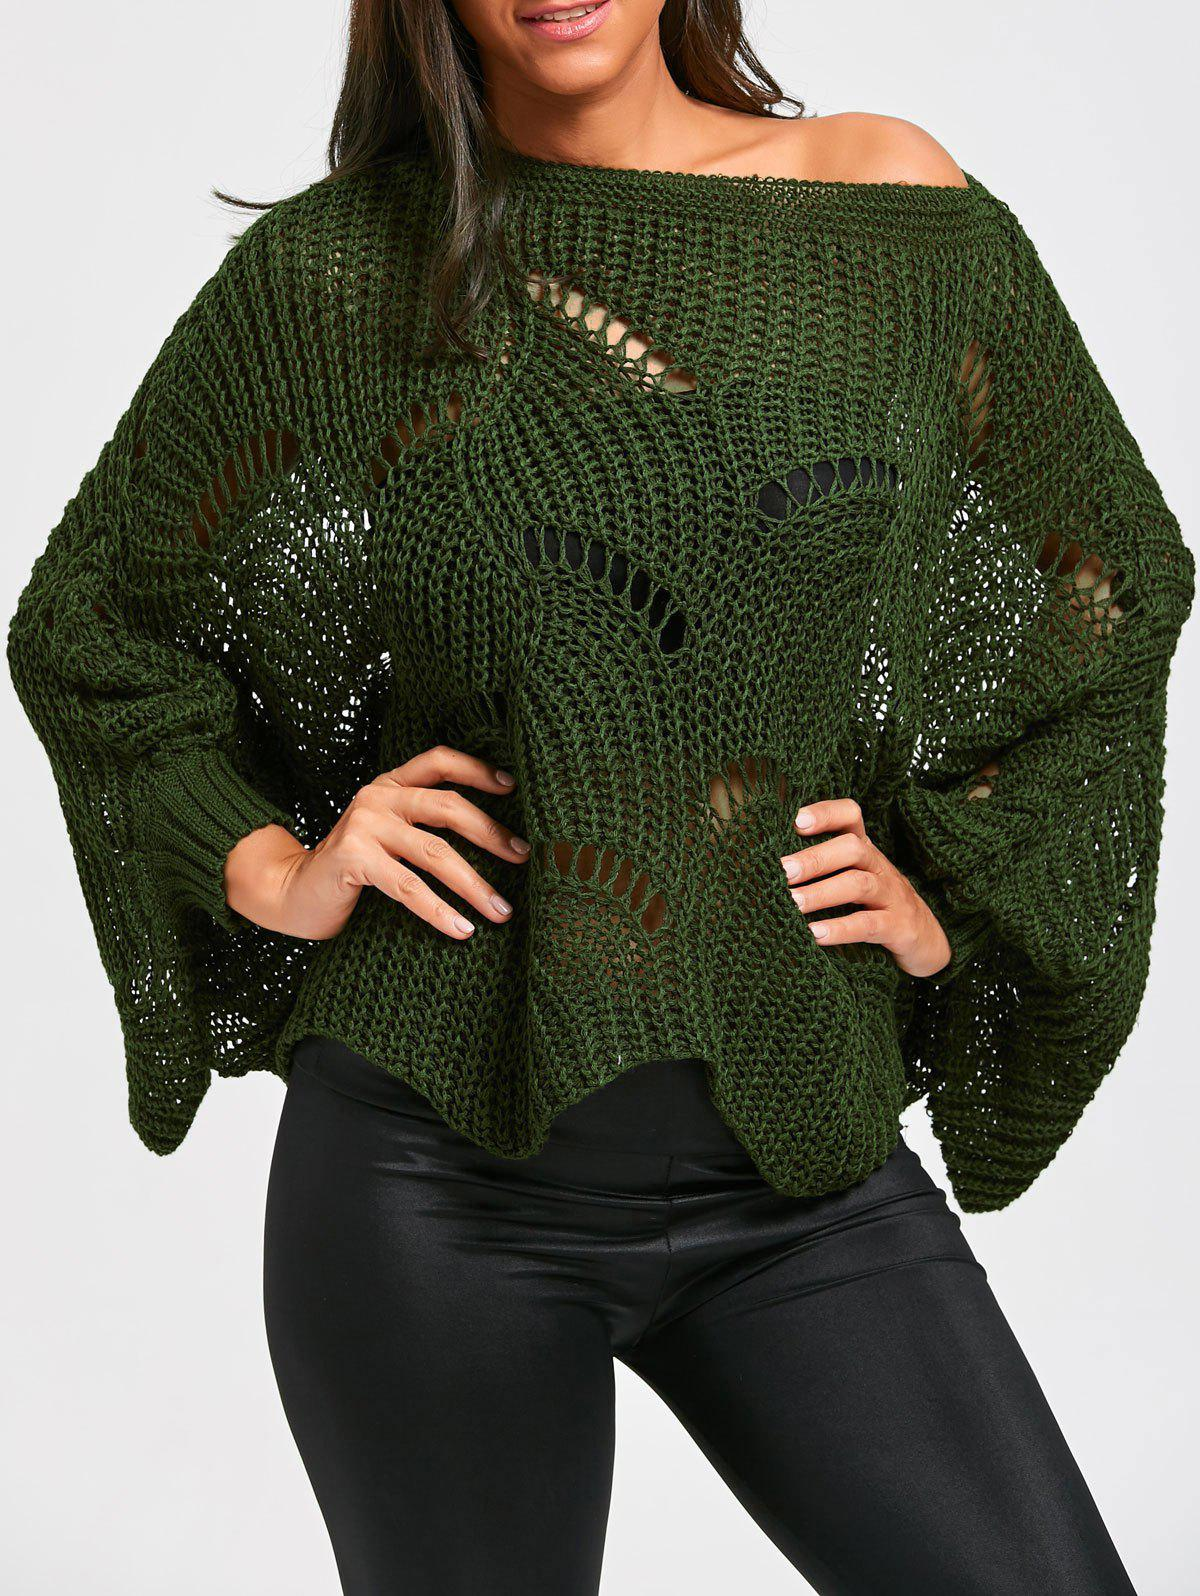 Oversized Batwing Sleeve Tunic Chunky SweaterWOMEN<br><br>Size: ONE SIZE; Color: ARMY GREEN; Type: Pullovers; Material: Cotton,Polyester; Sleeve Length: Full; Collar: Round Neck; Style: Casual; Pattern Type: Solid; Season: Fall,Spring; Weight: 0.3700kg; Package Contents: 1 x Sweater;